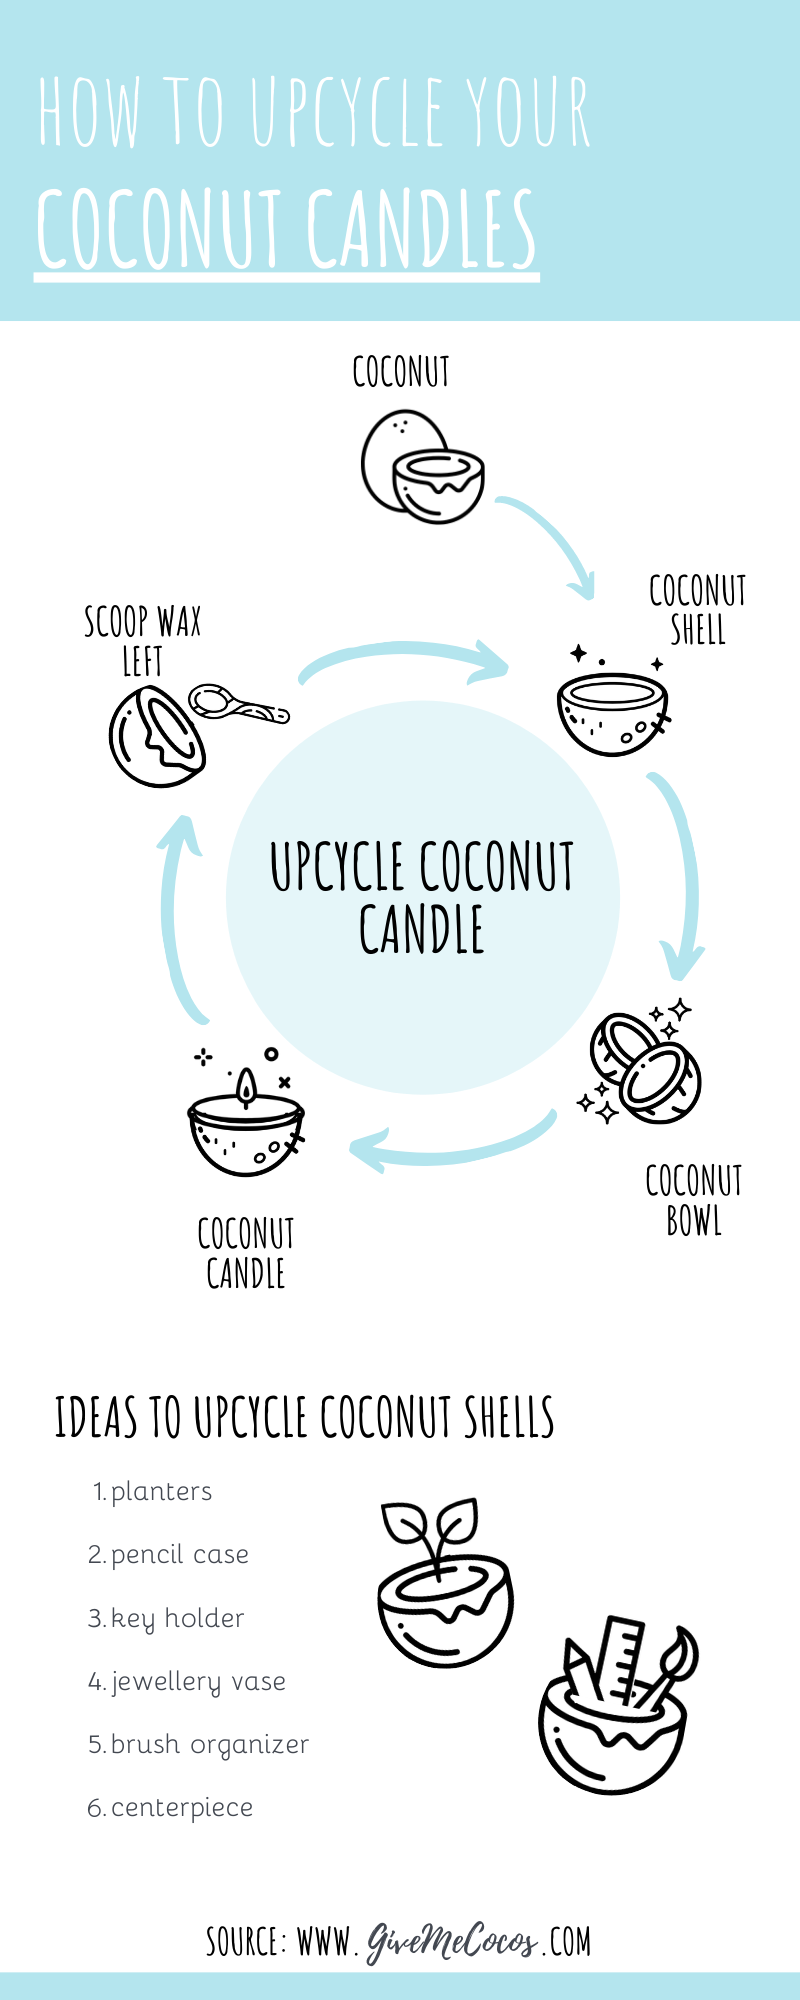 UPCYCLE YOUR GiveMeCocos CANDLES, Coconut Bowl, Coconut Shell